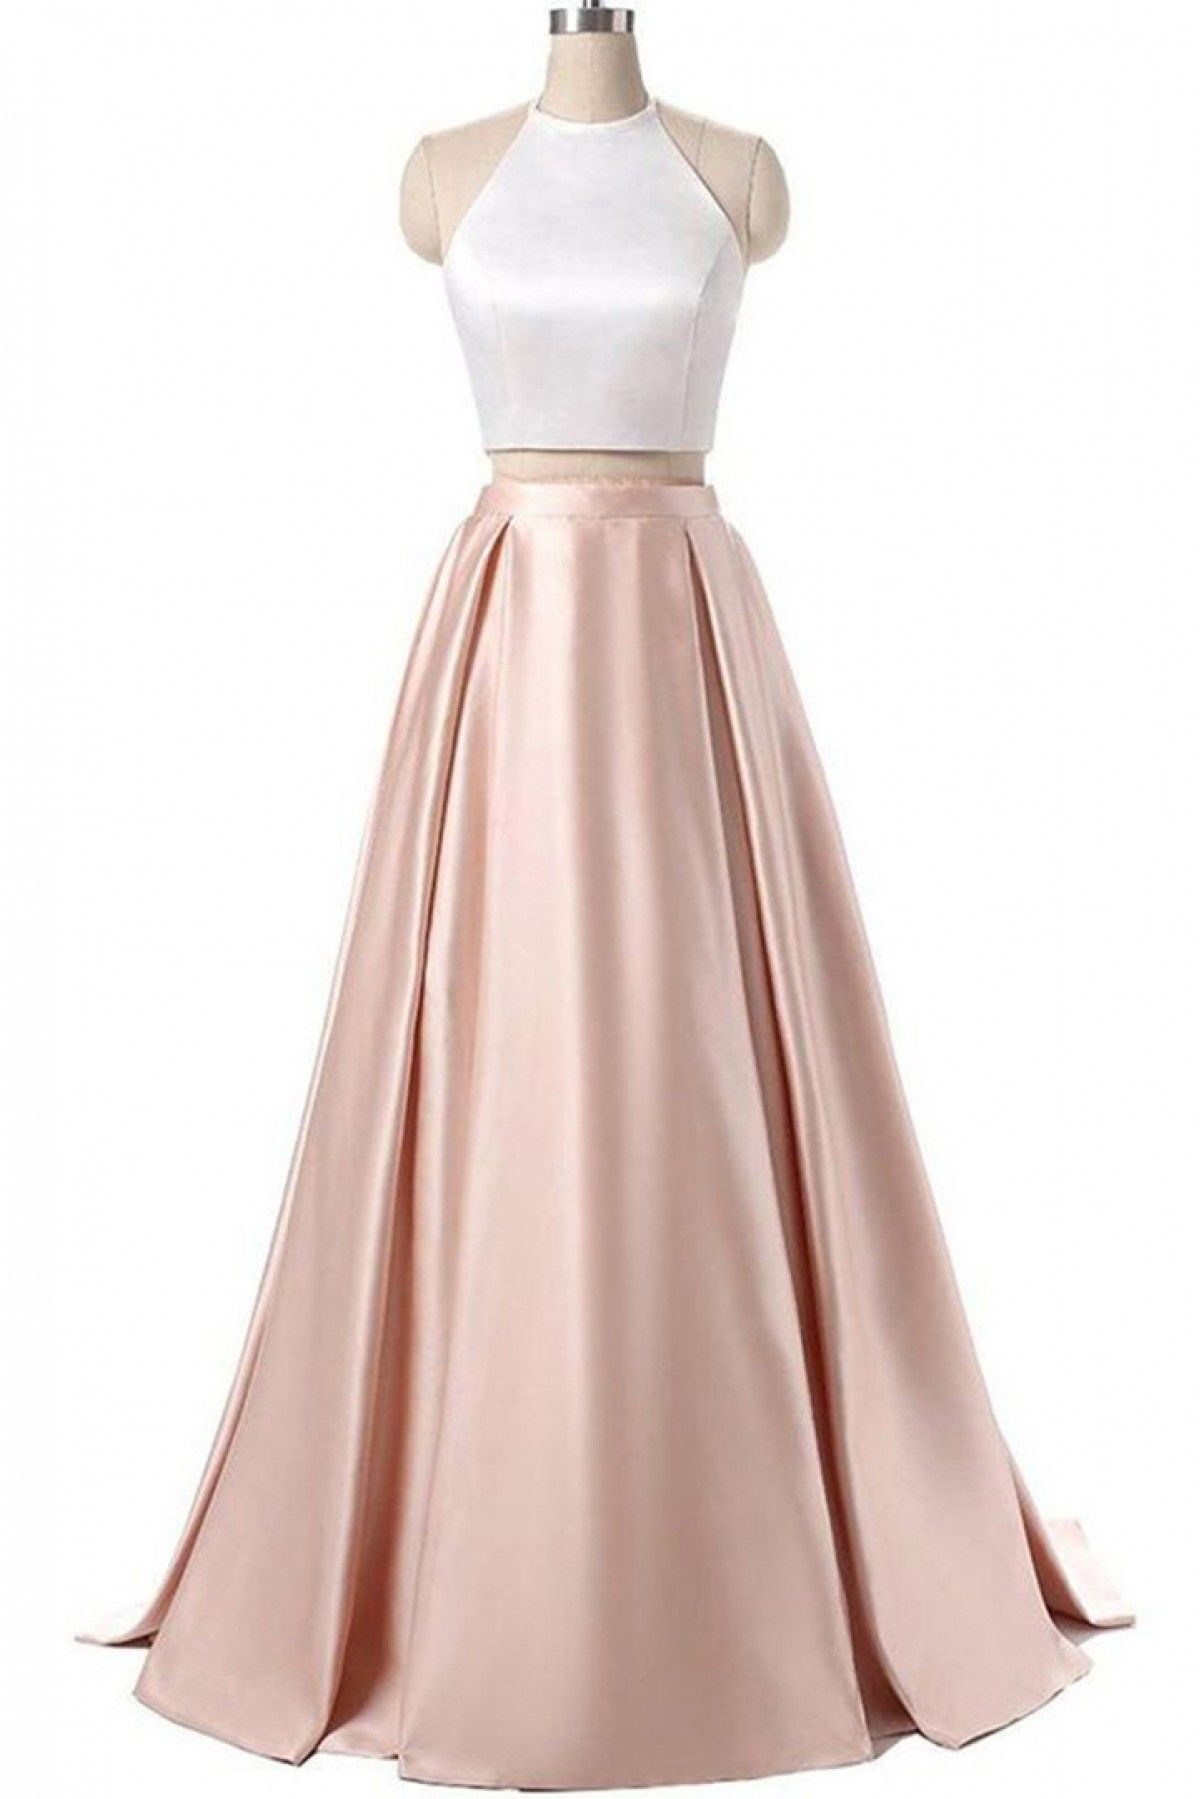 Youdesign satin skirt top in cream colour size upto ale